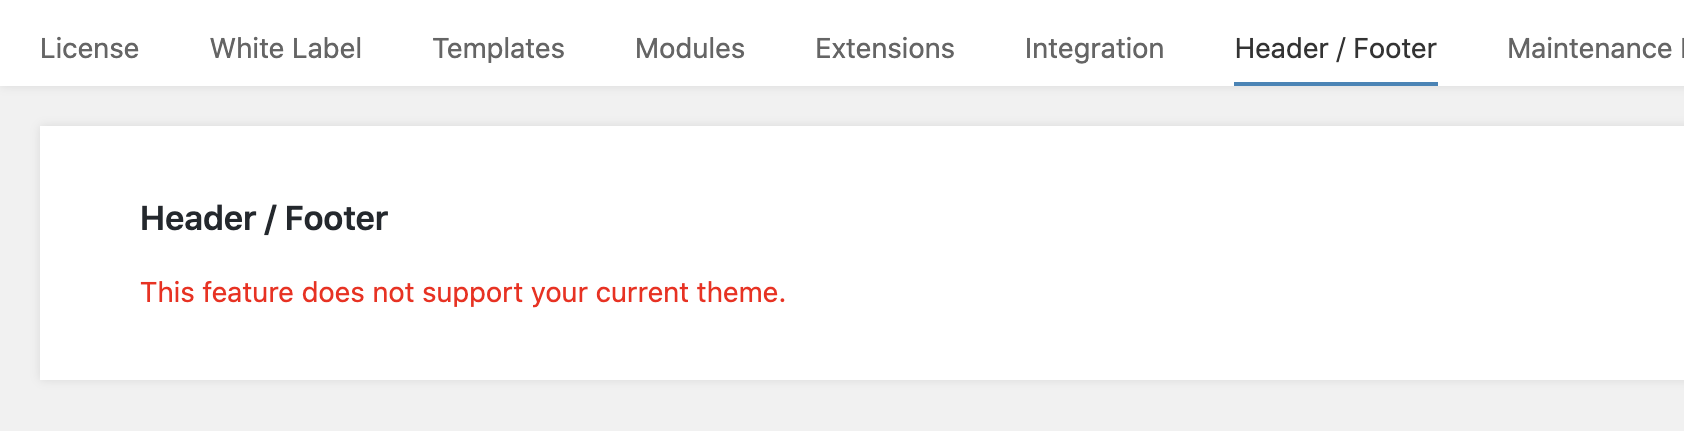 Header/Footer: Theme Not Supported Error